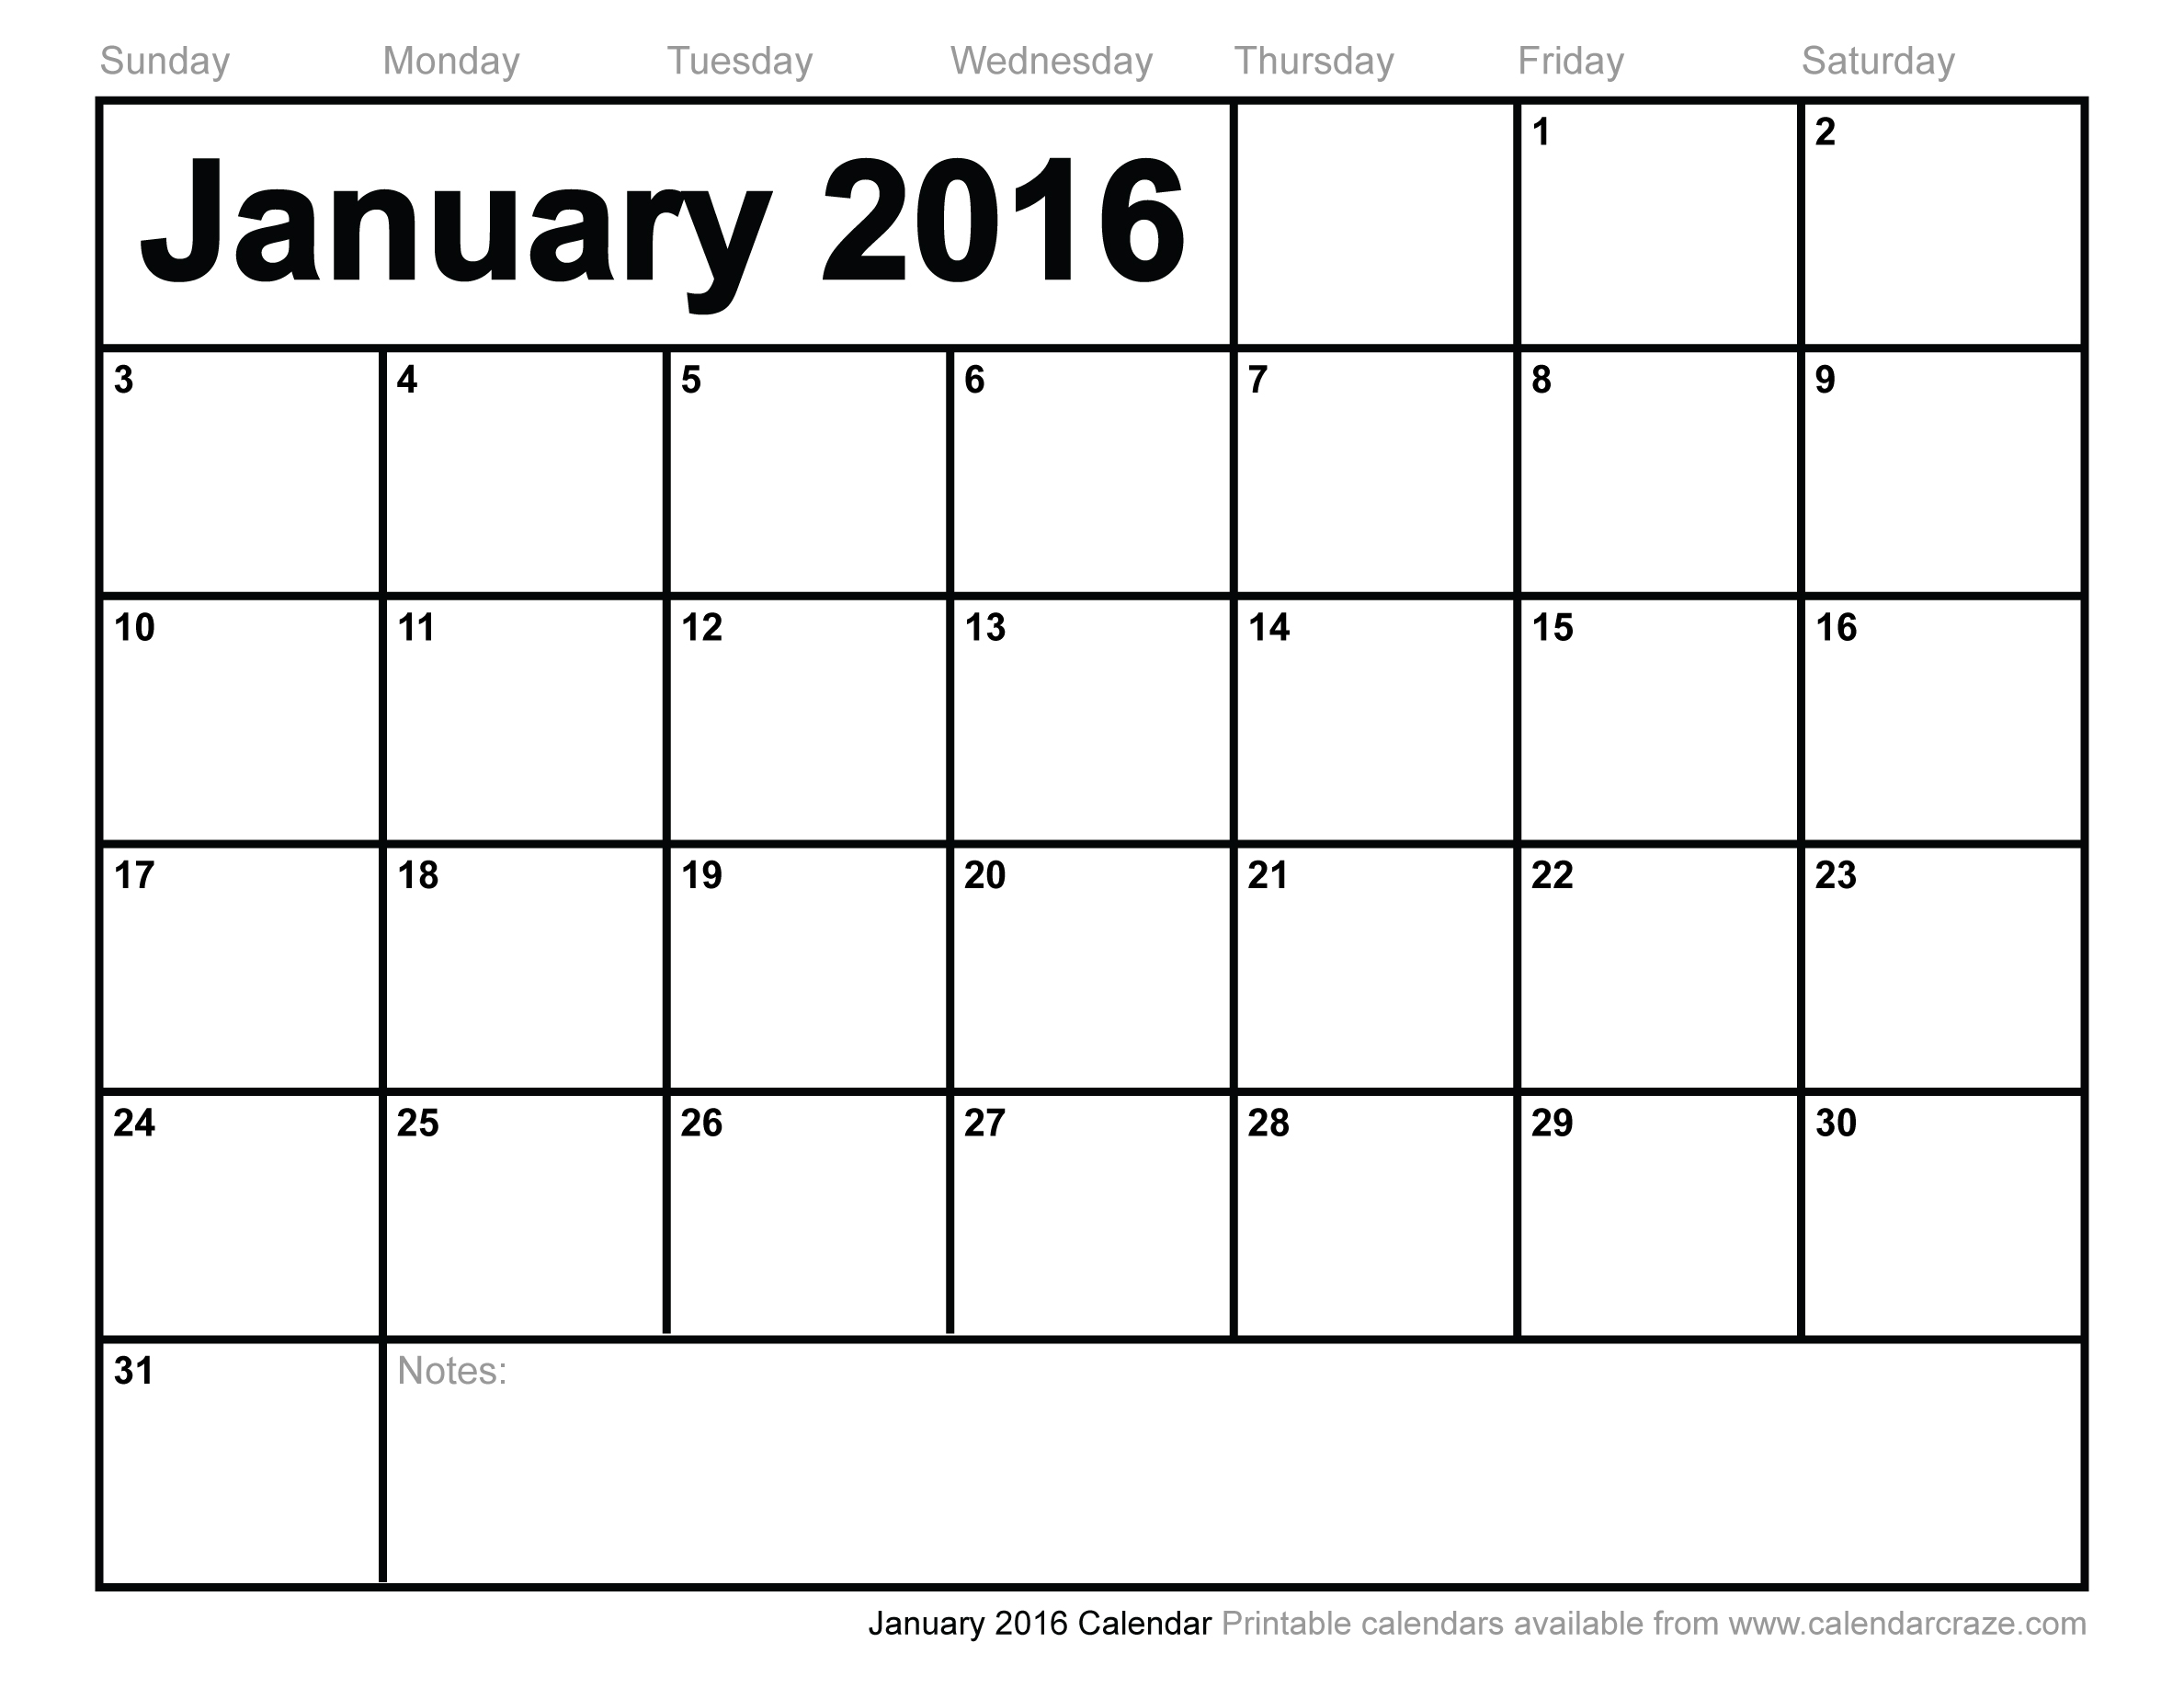 6 Images of January 2016 Calendar Printable Free